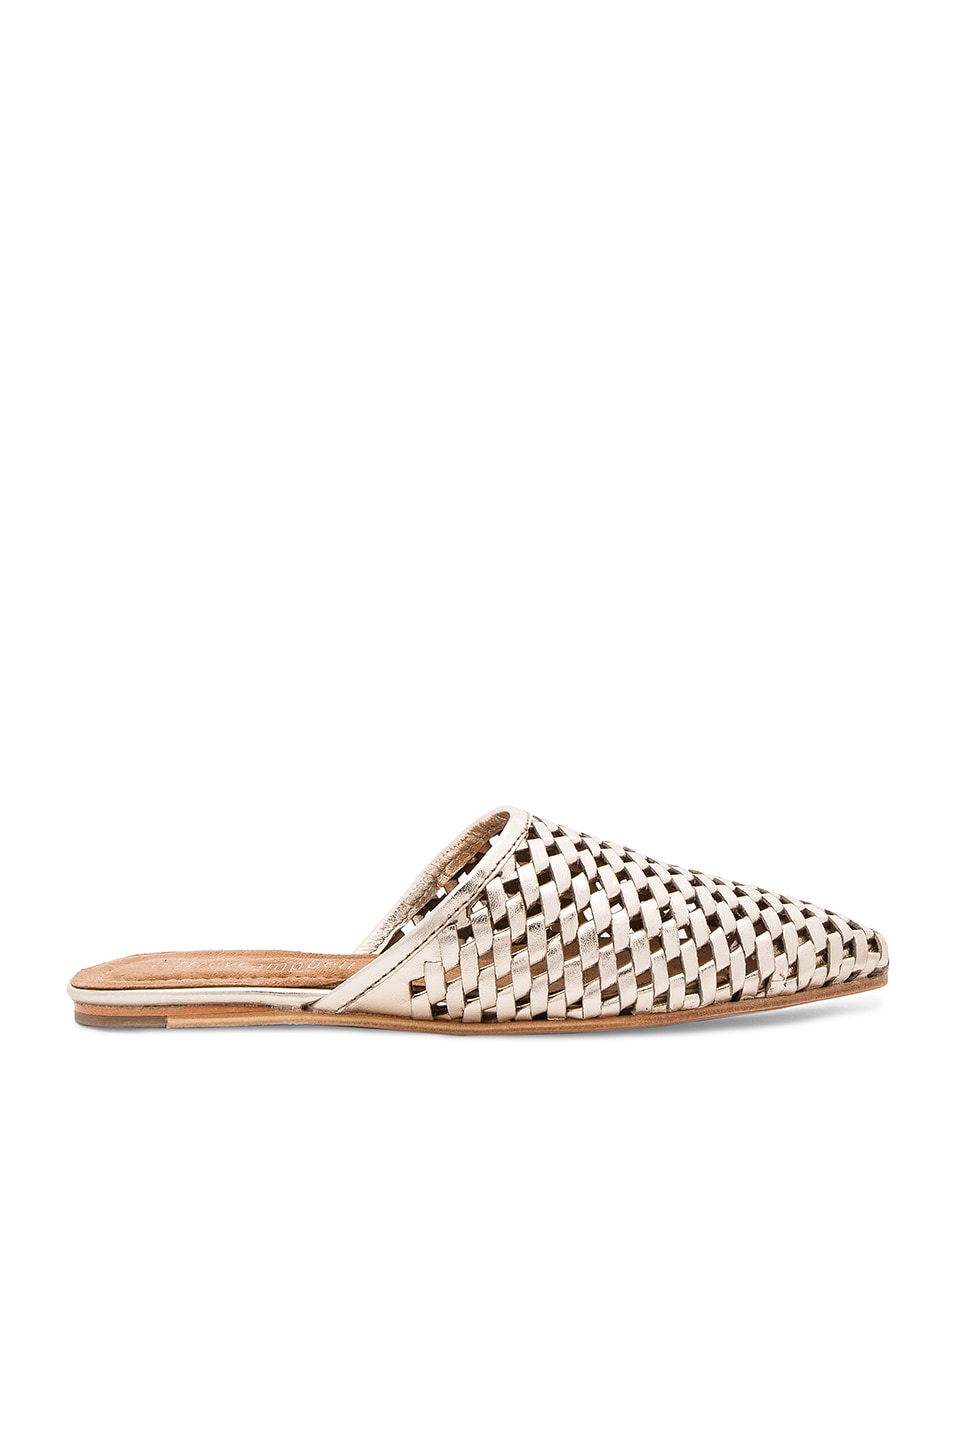 Jeffrey Campbell Doshi Slides in Gold Woven